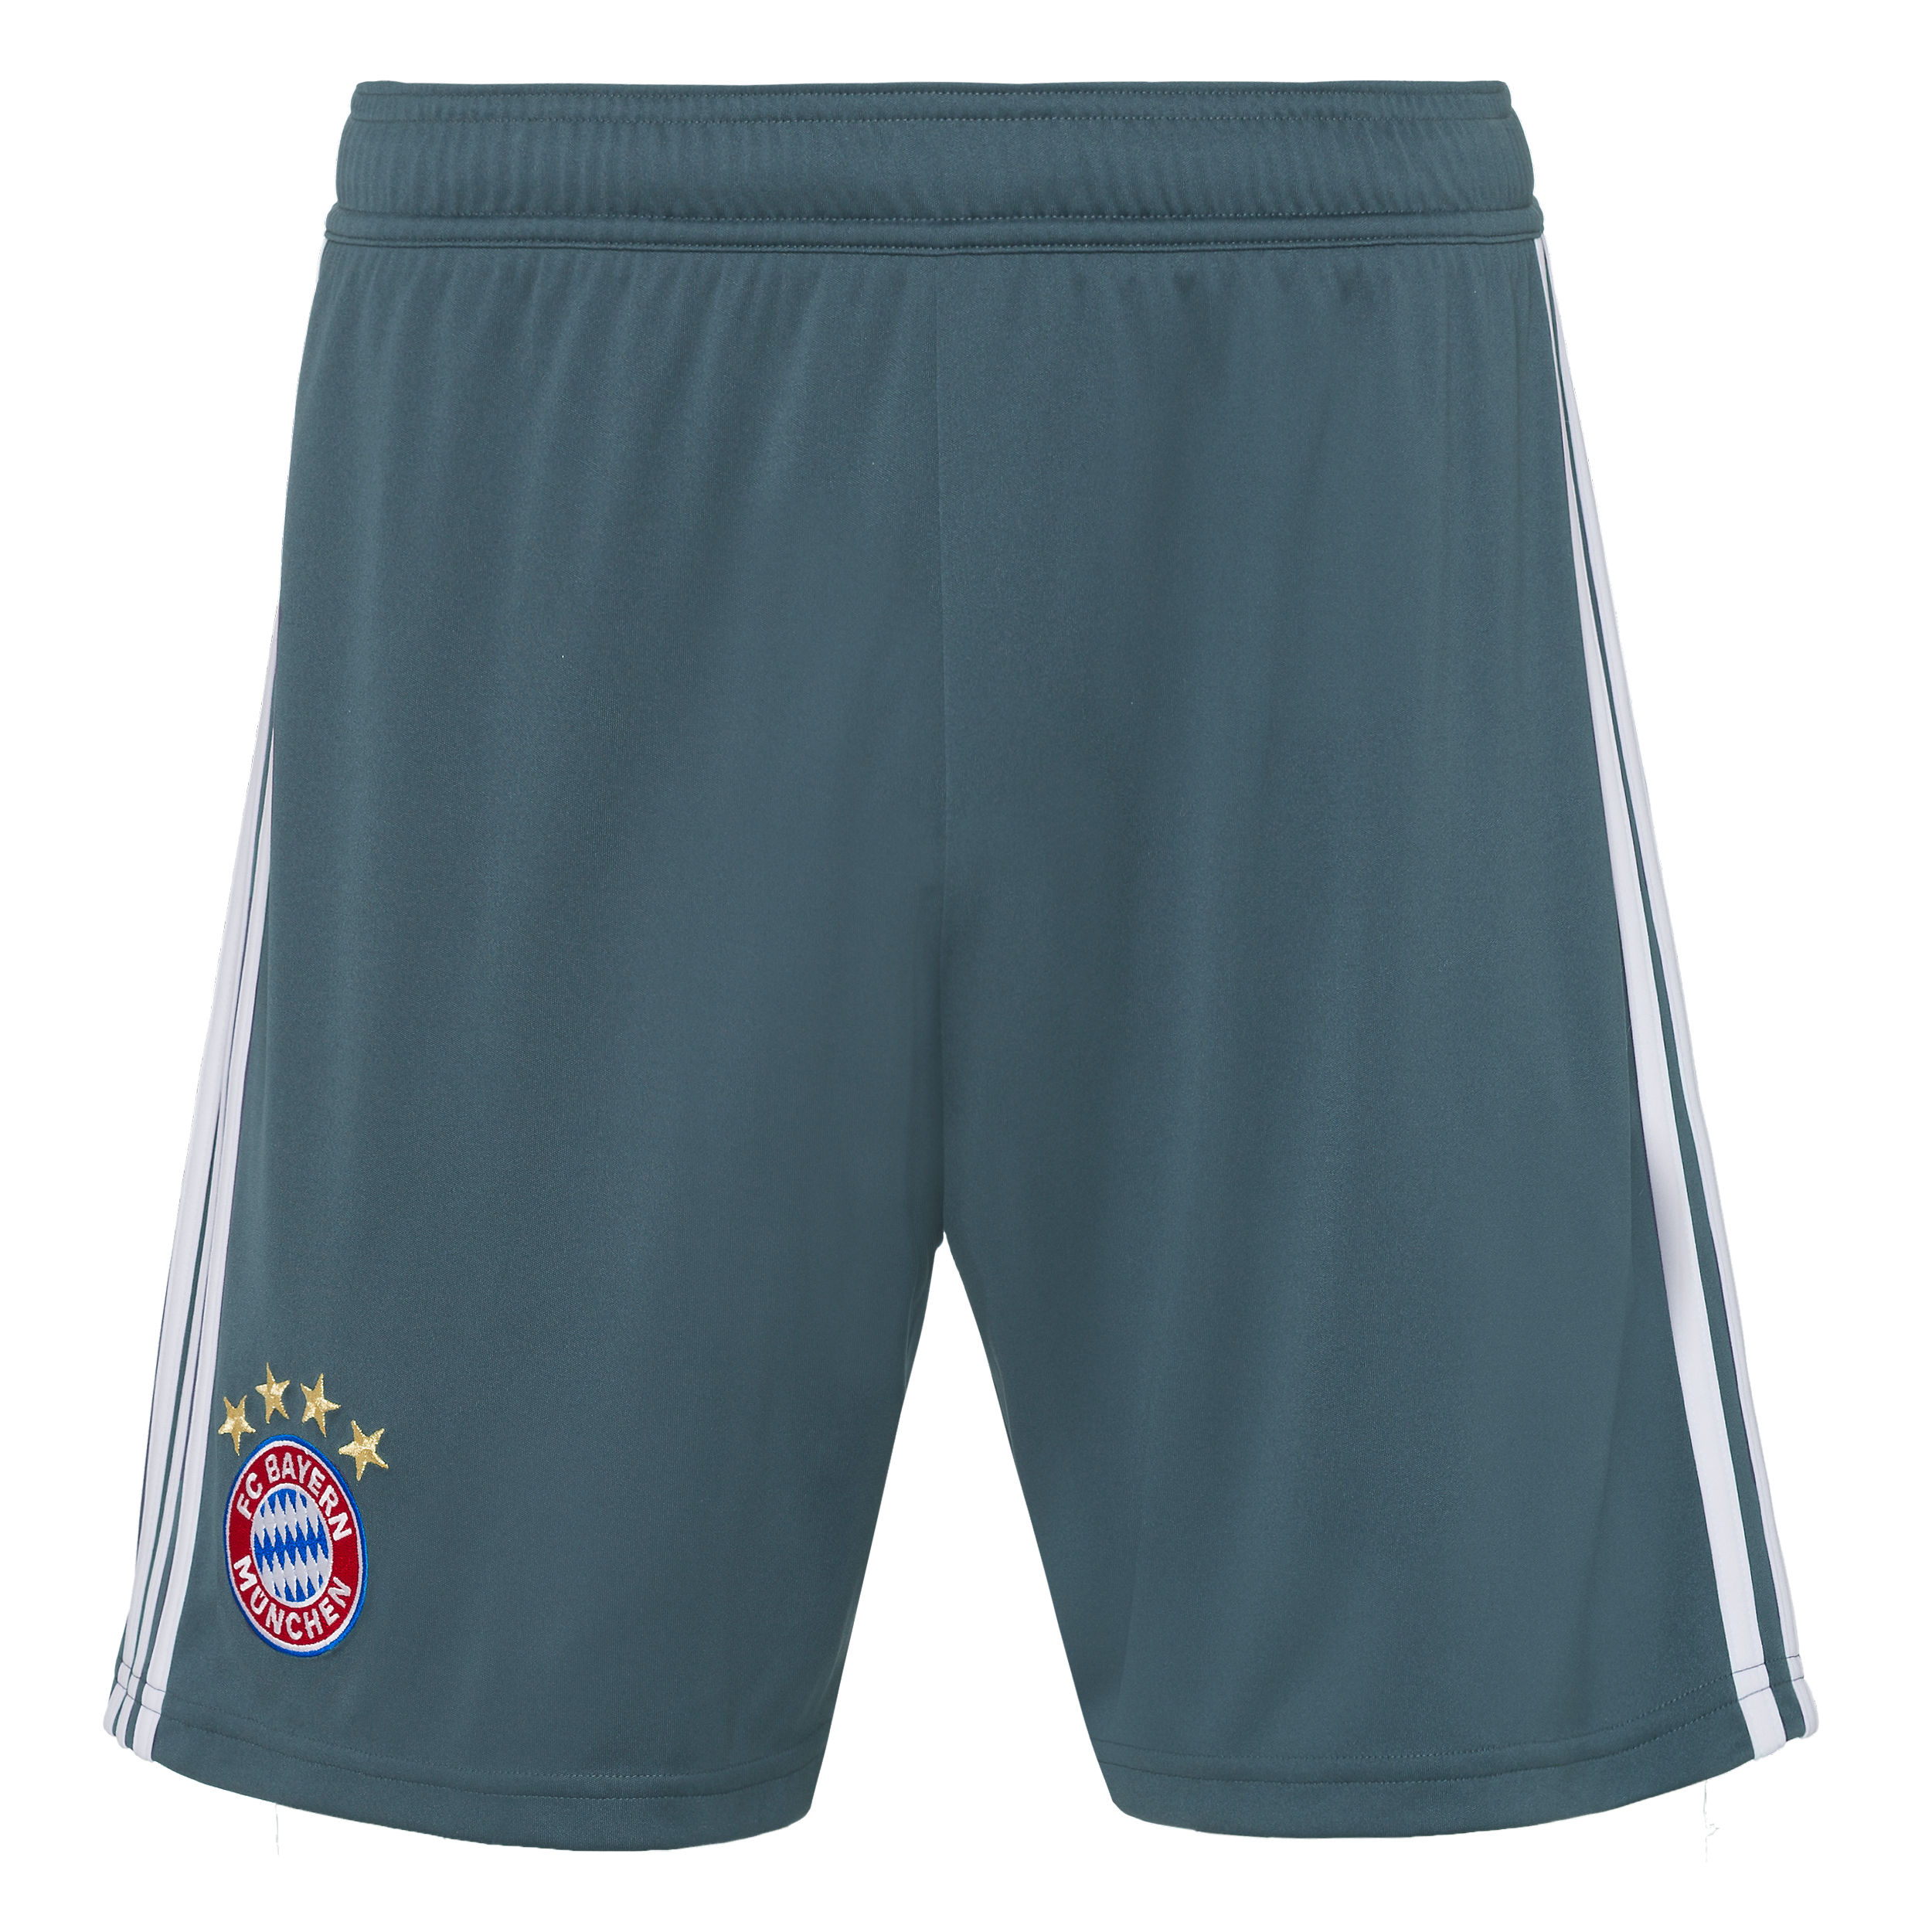 FC Bayern Short Champions League 18/19